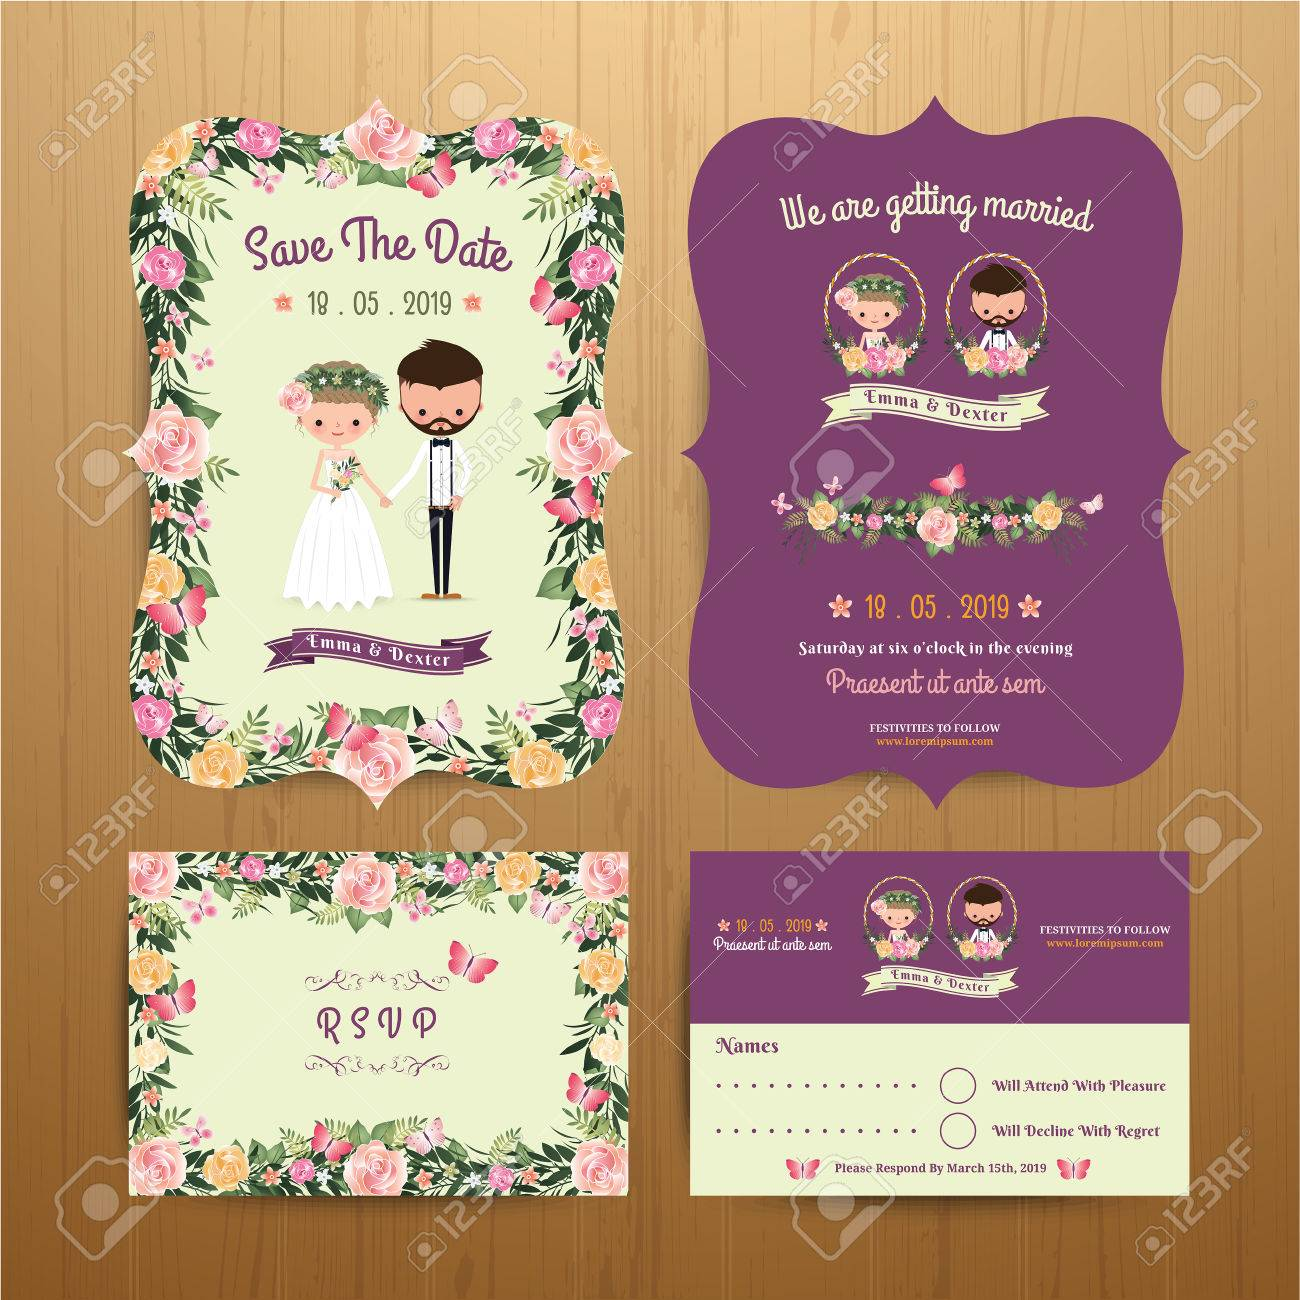 Rustic blossom flowers cartoon couple wedding invitation card rustic blossom flowers cartoon couple wedding invitation card rsvp set on wood background stock vector stopboris Image collections